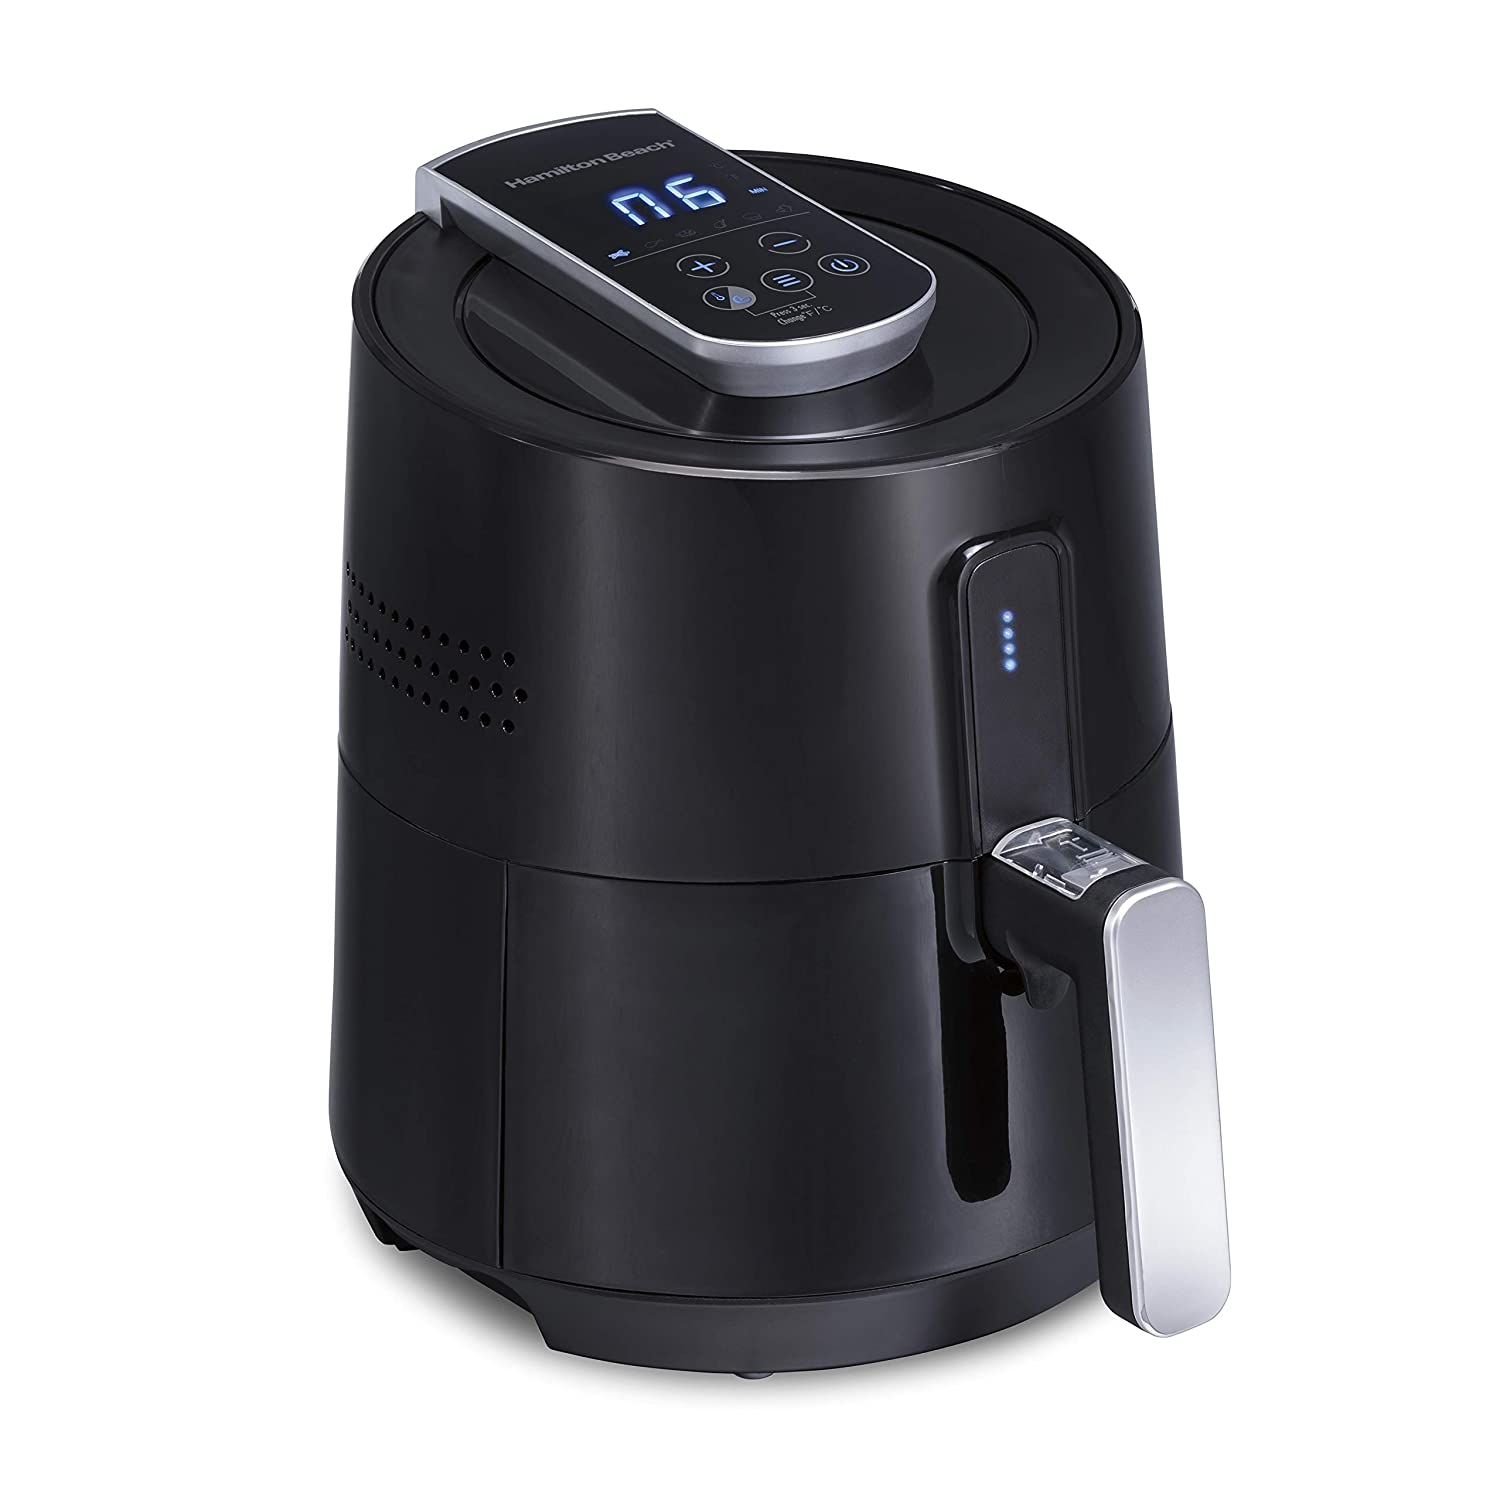 Hamilton Beach Air Fryer Oven Digital and Programmable, Easy to Clean Nonstick, 2.5 Liters/ 2.6 Quarts (35050), Black